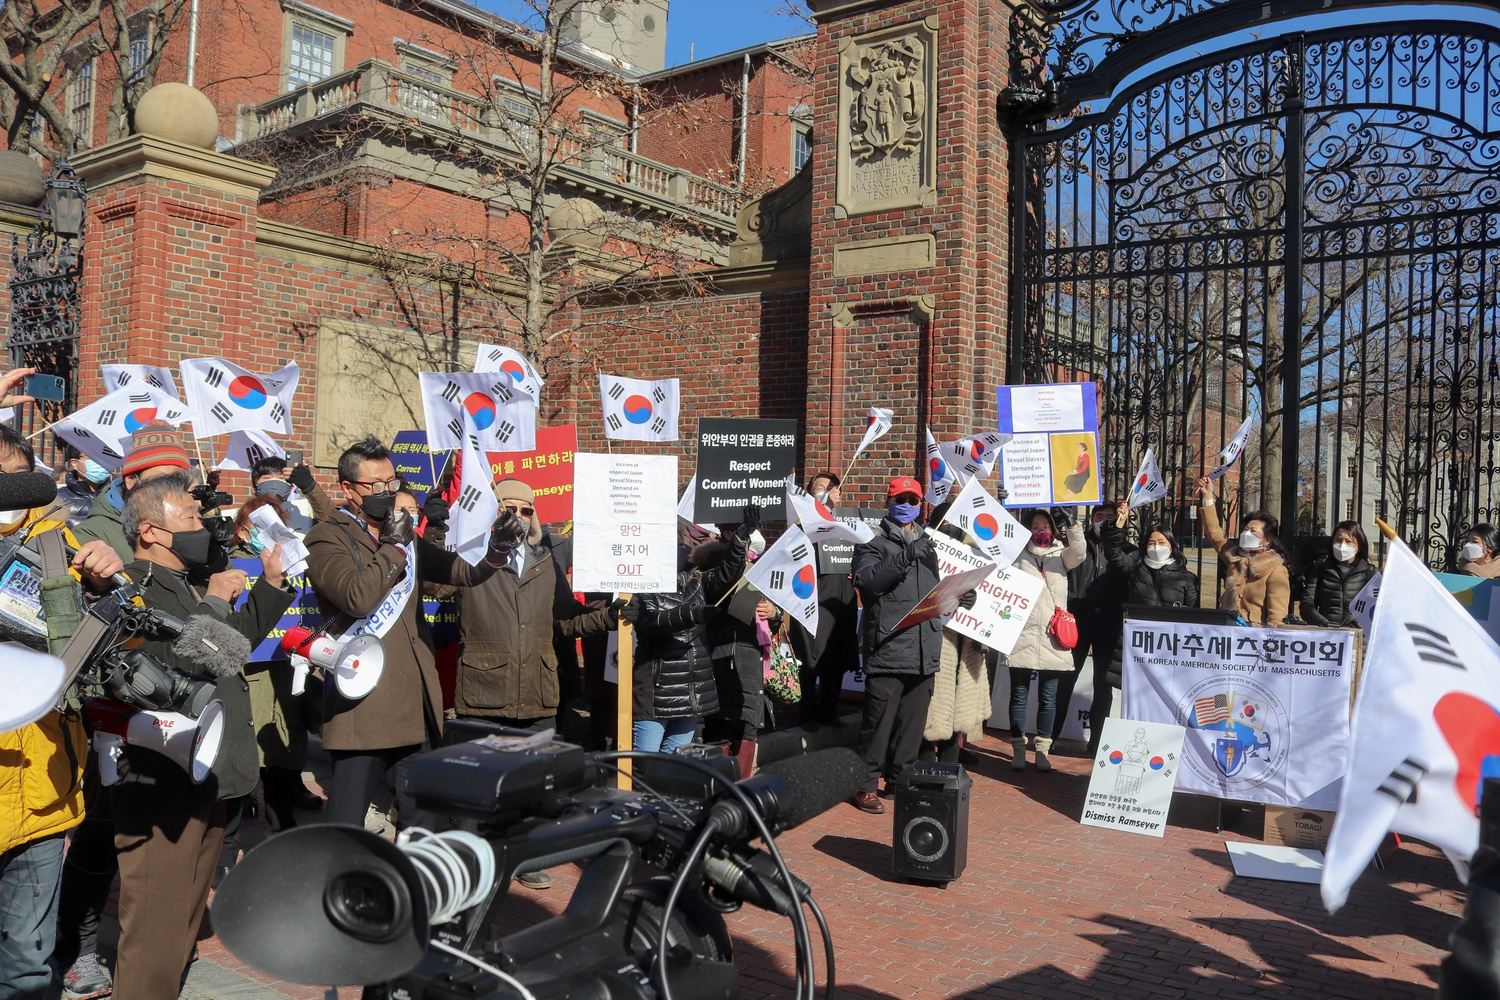 Dozens of demonstrators gathered outside Harvard Yard Saturday to protest Harvard Law professor J. Mark Ramseyer's upcoming paper on comfort women. Ramseyer has faced an outpouring of public criticism from government officials worldwide over the article.